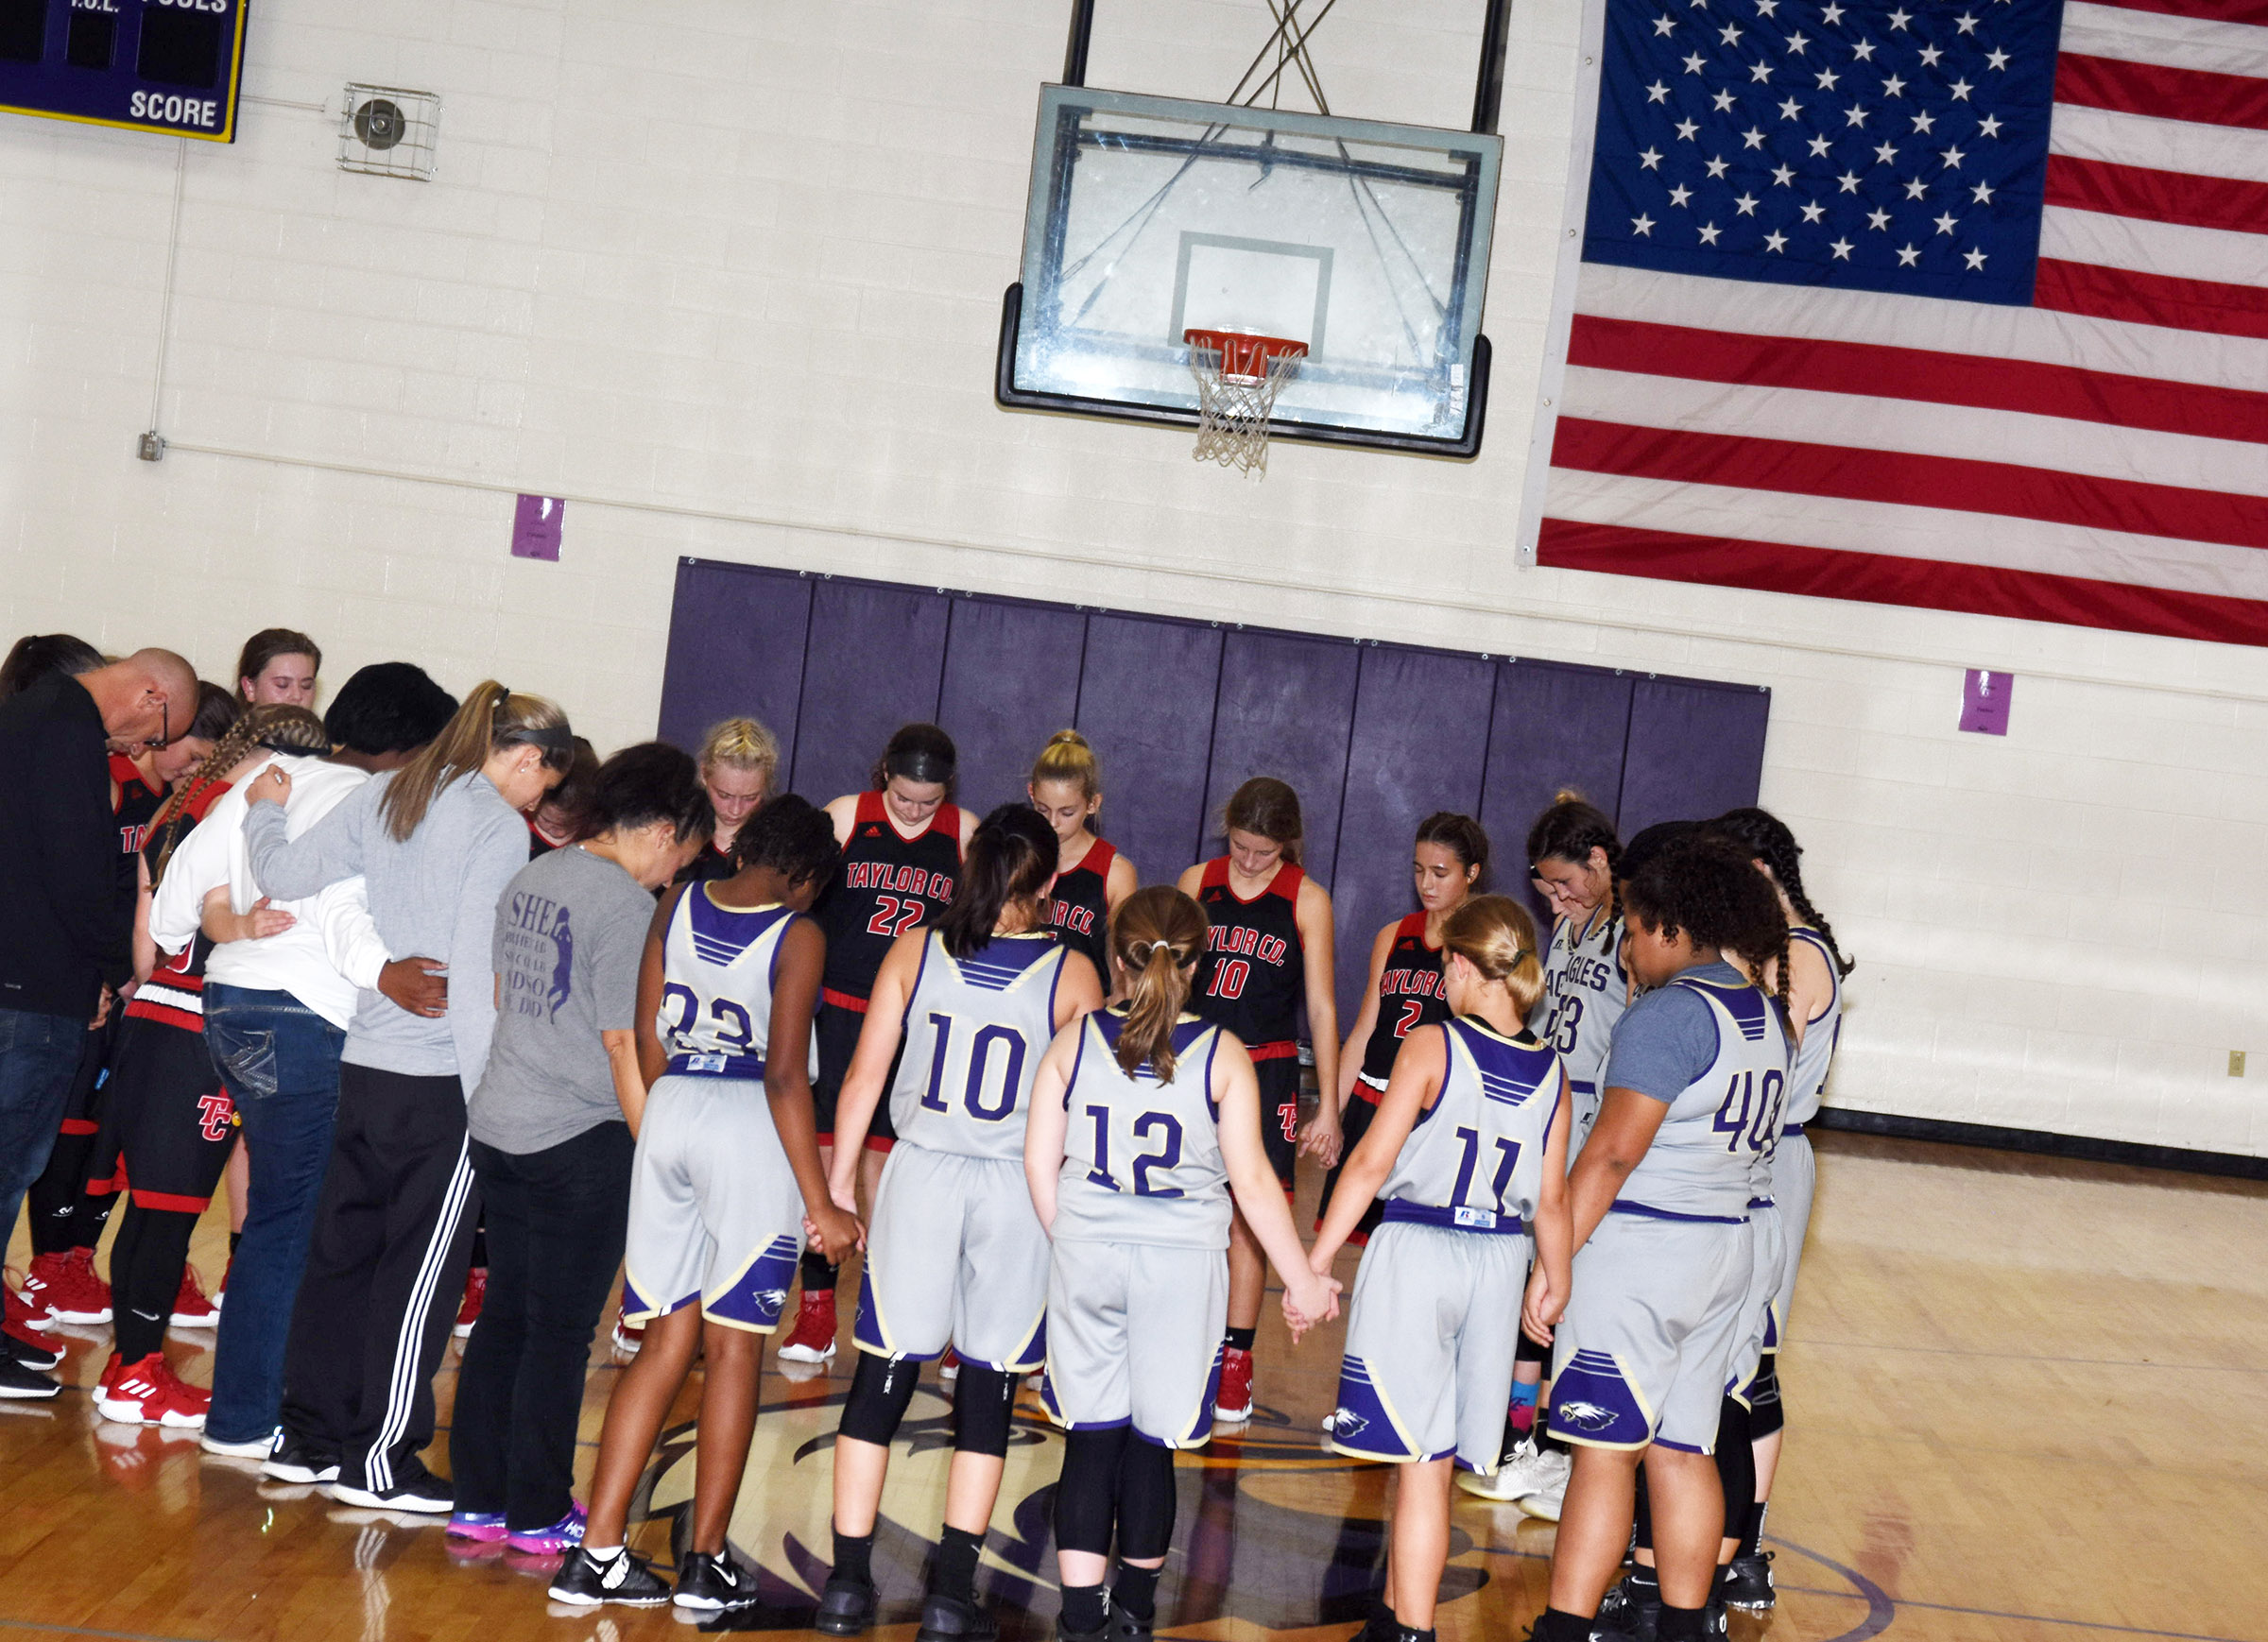 CMS girls' basketball players pray with Taylor County players after the game.